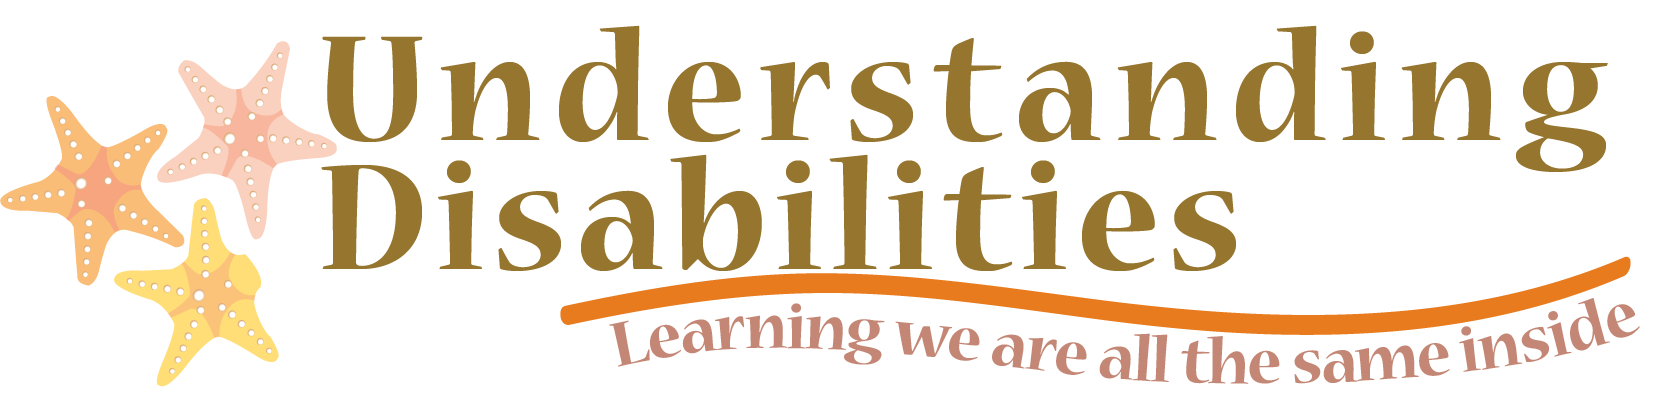 Understanding Disabilities, Inc